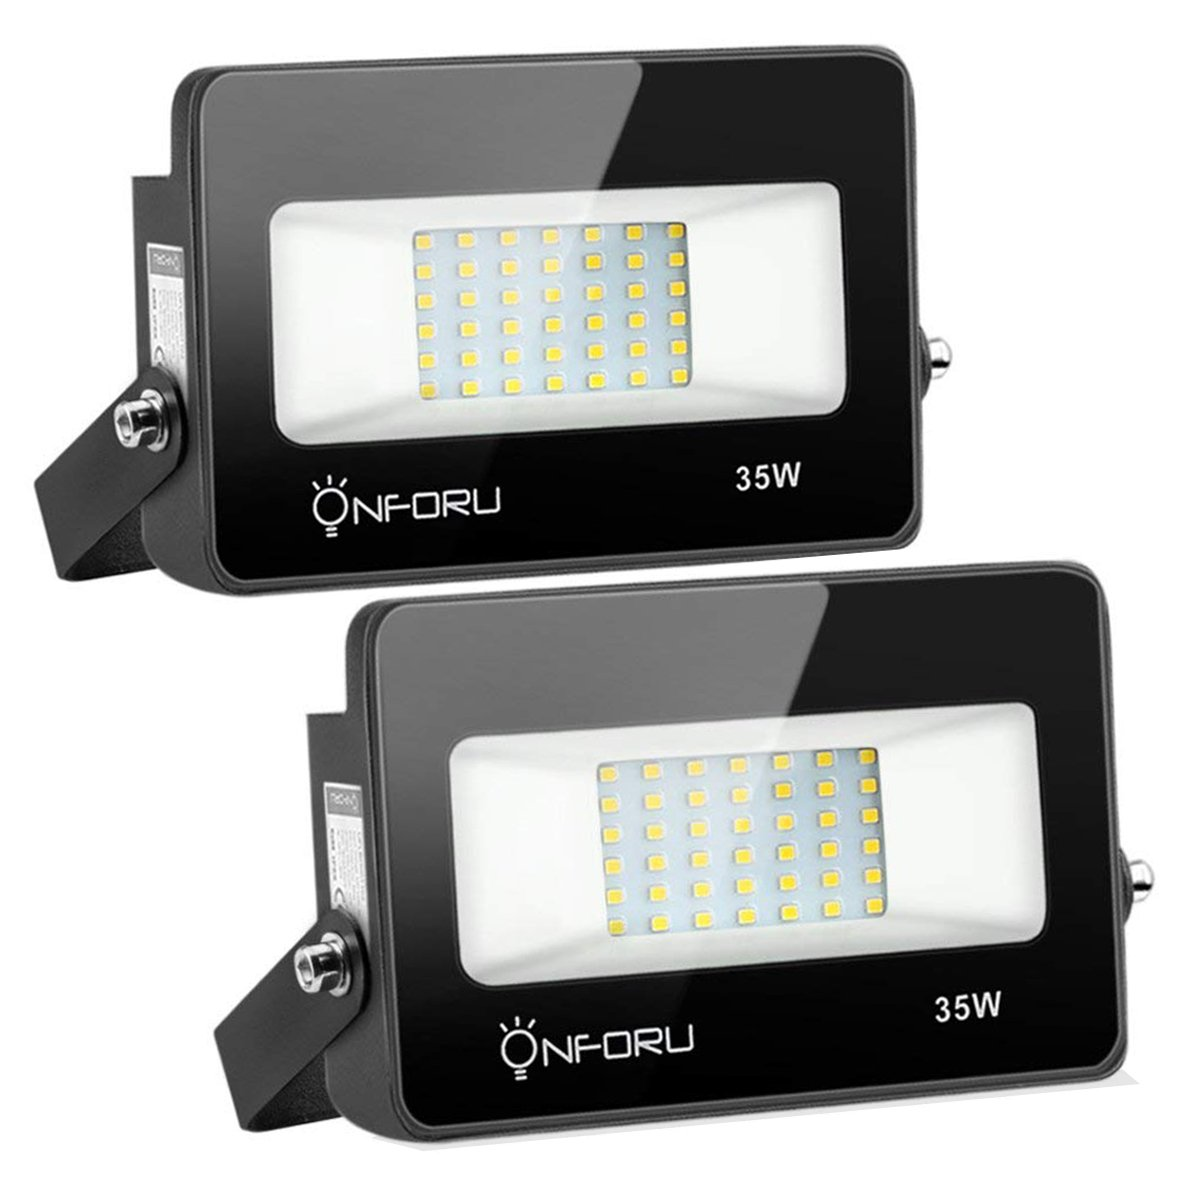 Onforu 2 Pack 35W LED Flood Light, IP65 Waterproof, 3000lm 5000K Daylight White, Super Bright Security Lights, Outdoor Landscape Floodlight for Yard, Garden, Garages, Rooftop, Party